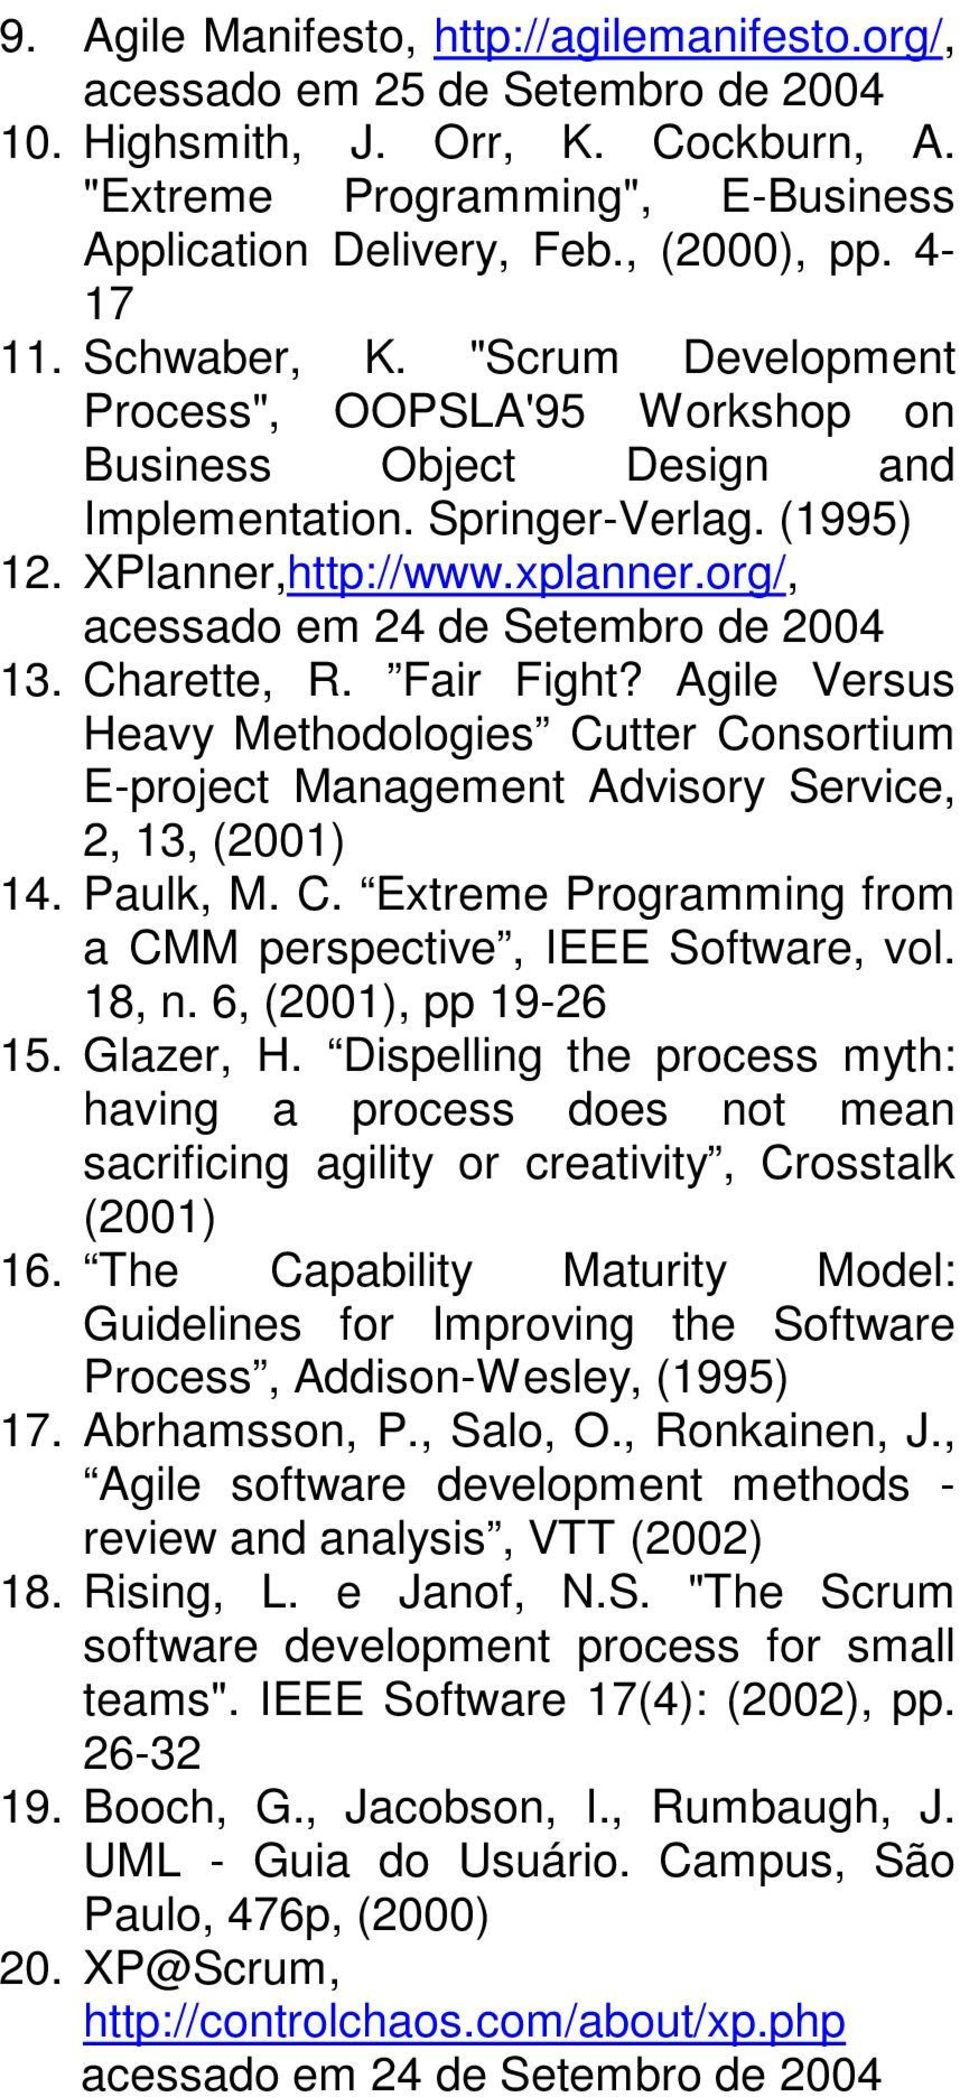 org/, acessado em 24 de Setembro de 2004 13. Charette, R. Fair Fight? Agile Versus Heavy Methodologies Cutter Consortium E-project Management Advisory Service, 2, 13, (2001) 14. Paulk, M. C. Extreme Programming from a CMM perspective, IEEE Software, vol.